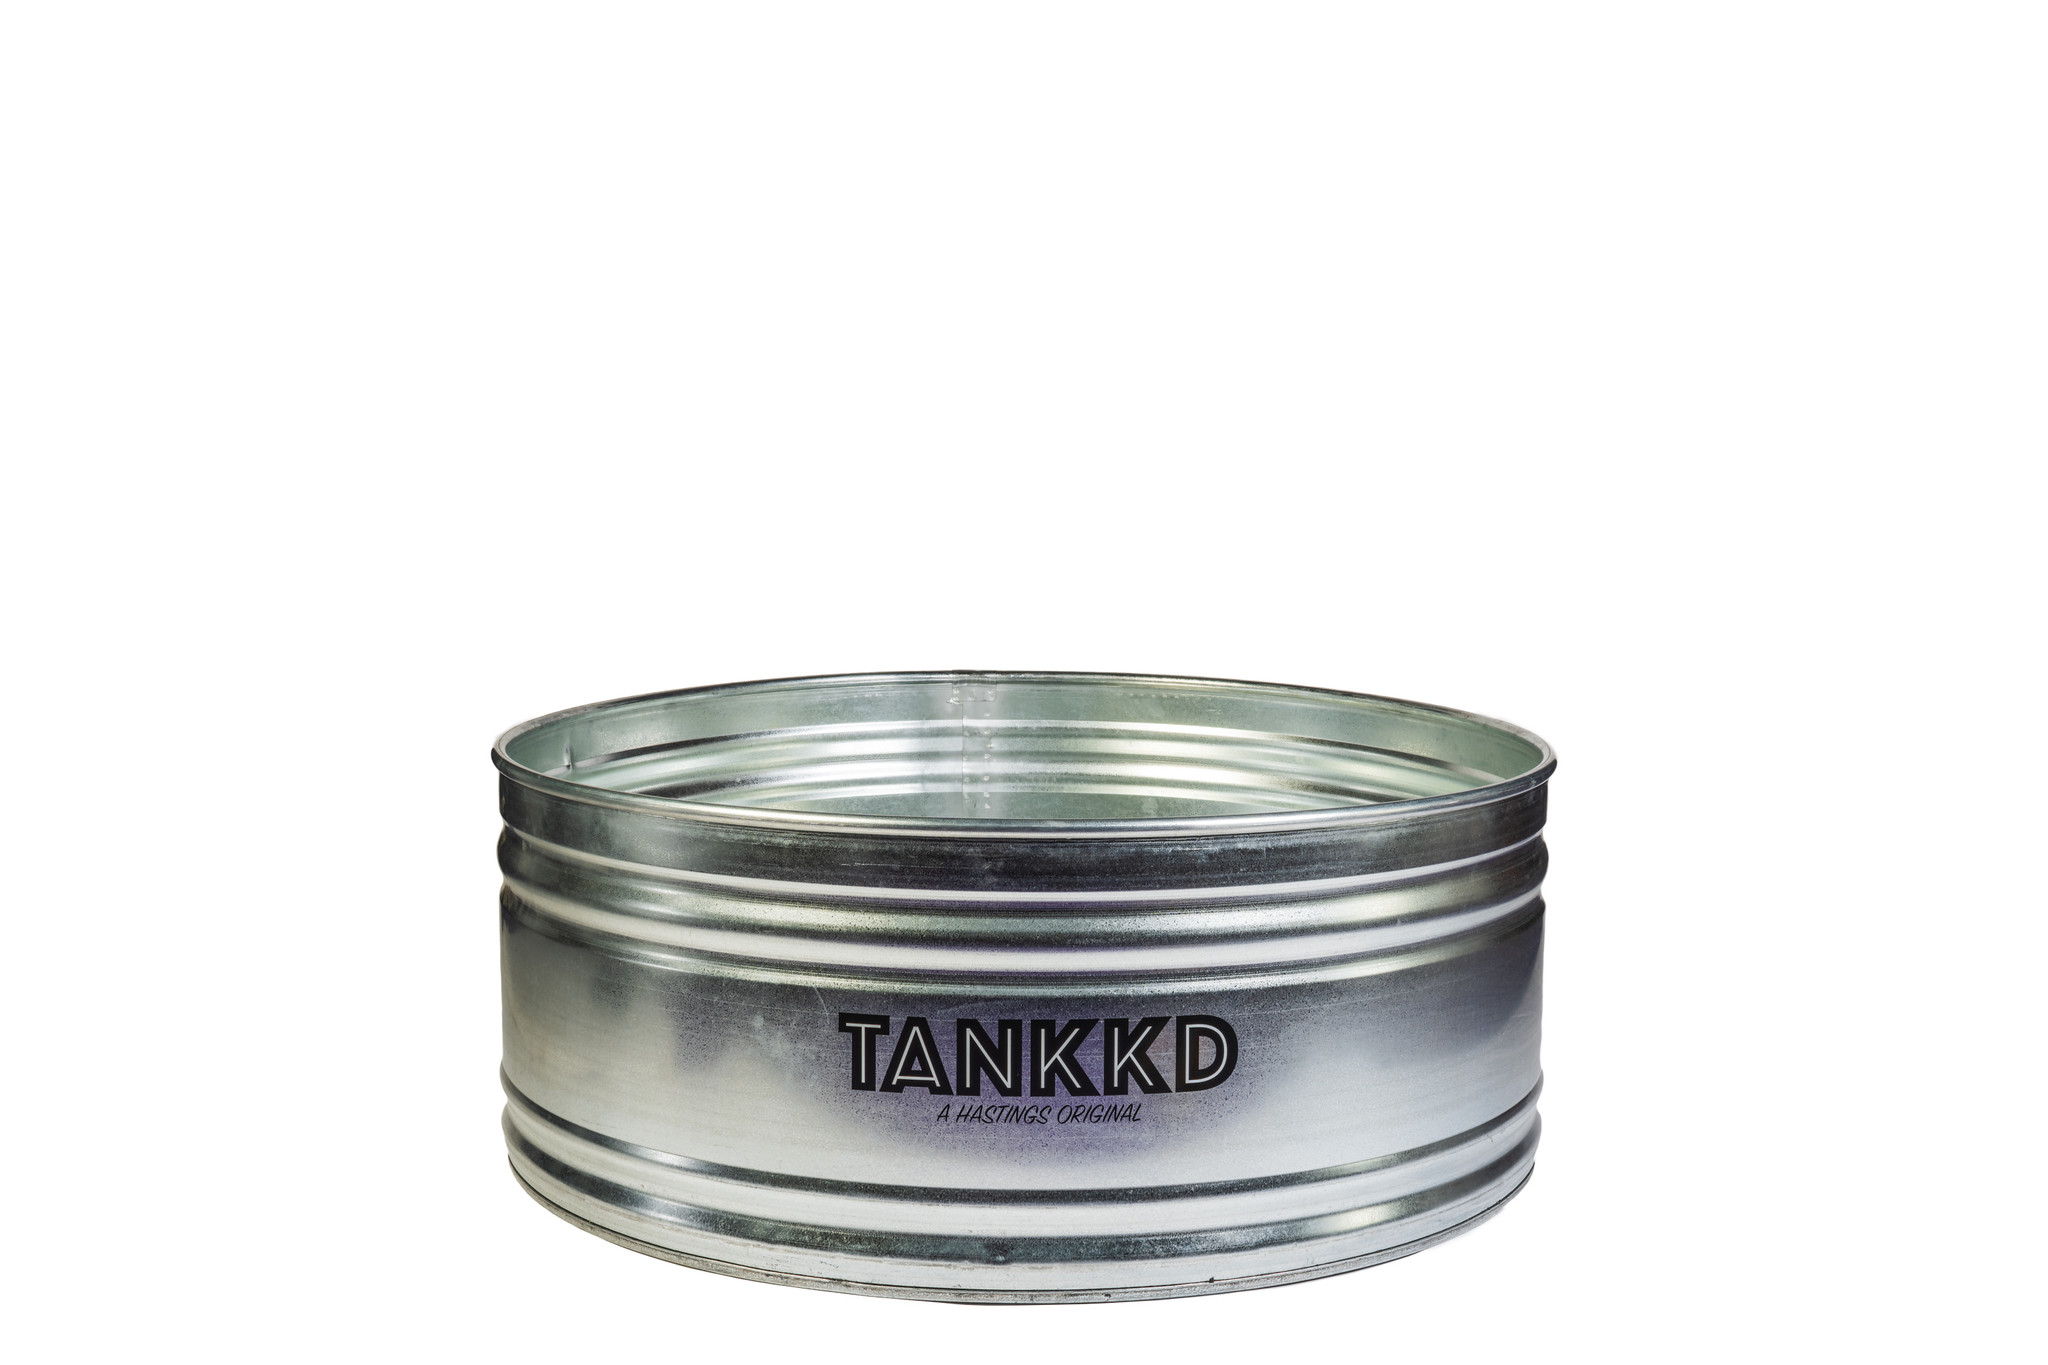 Tankkd a Hastings original stock tank Black Label round-8